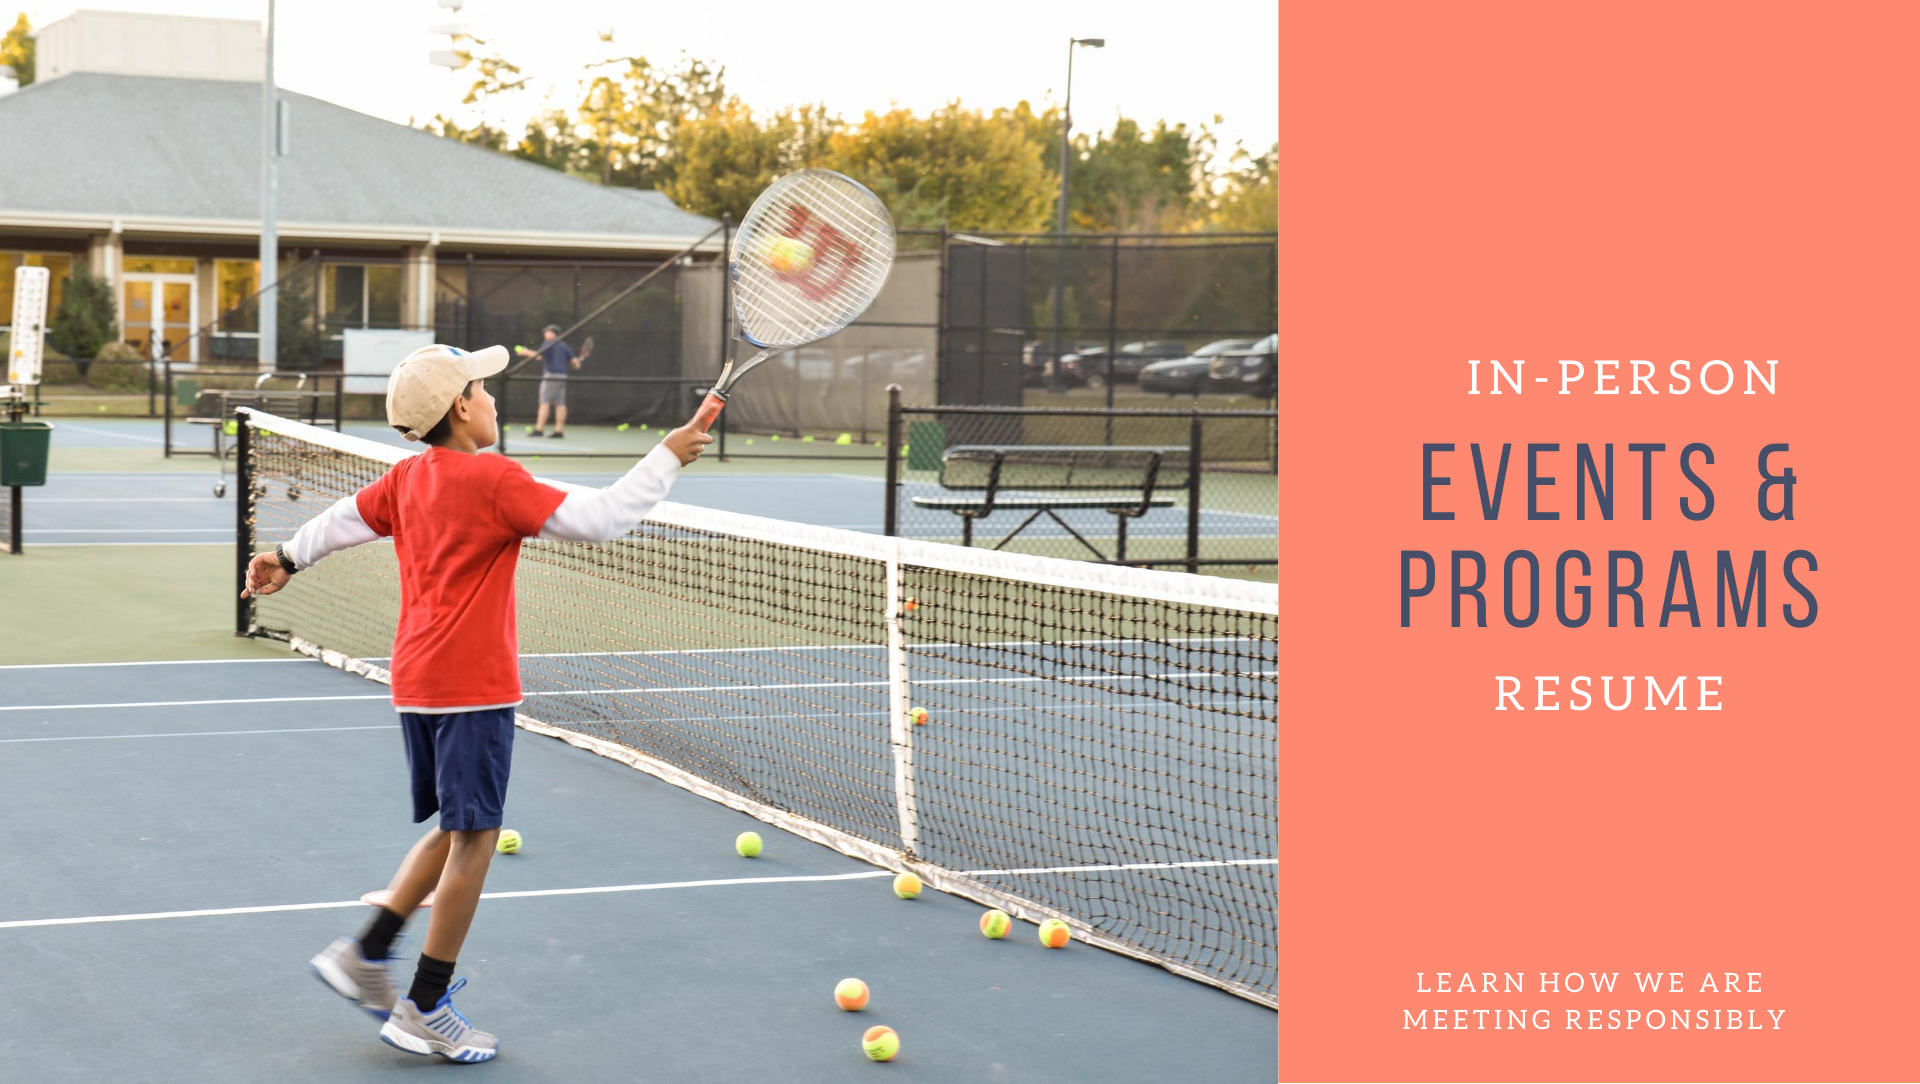 young boy playing tennis infographic - programs resume